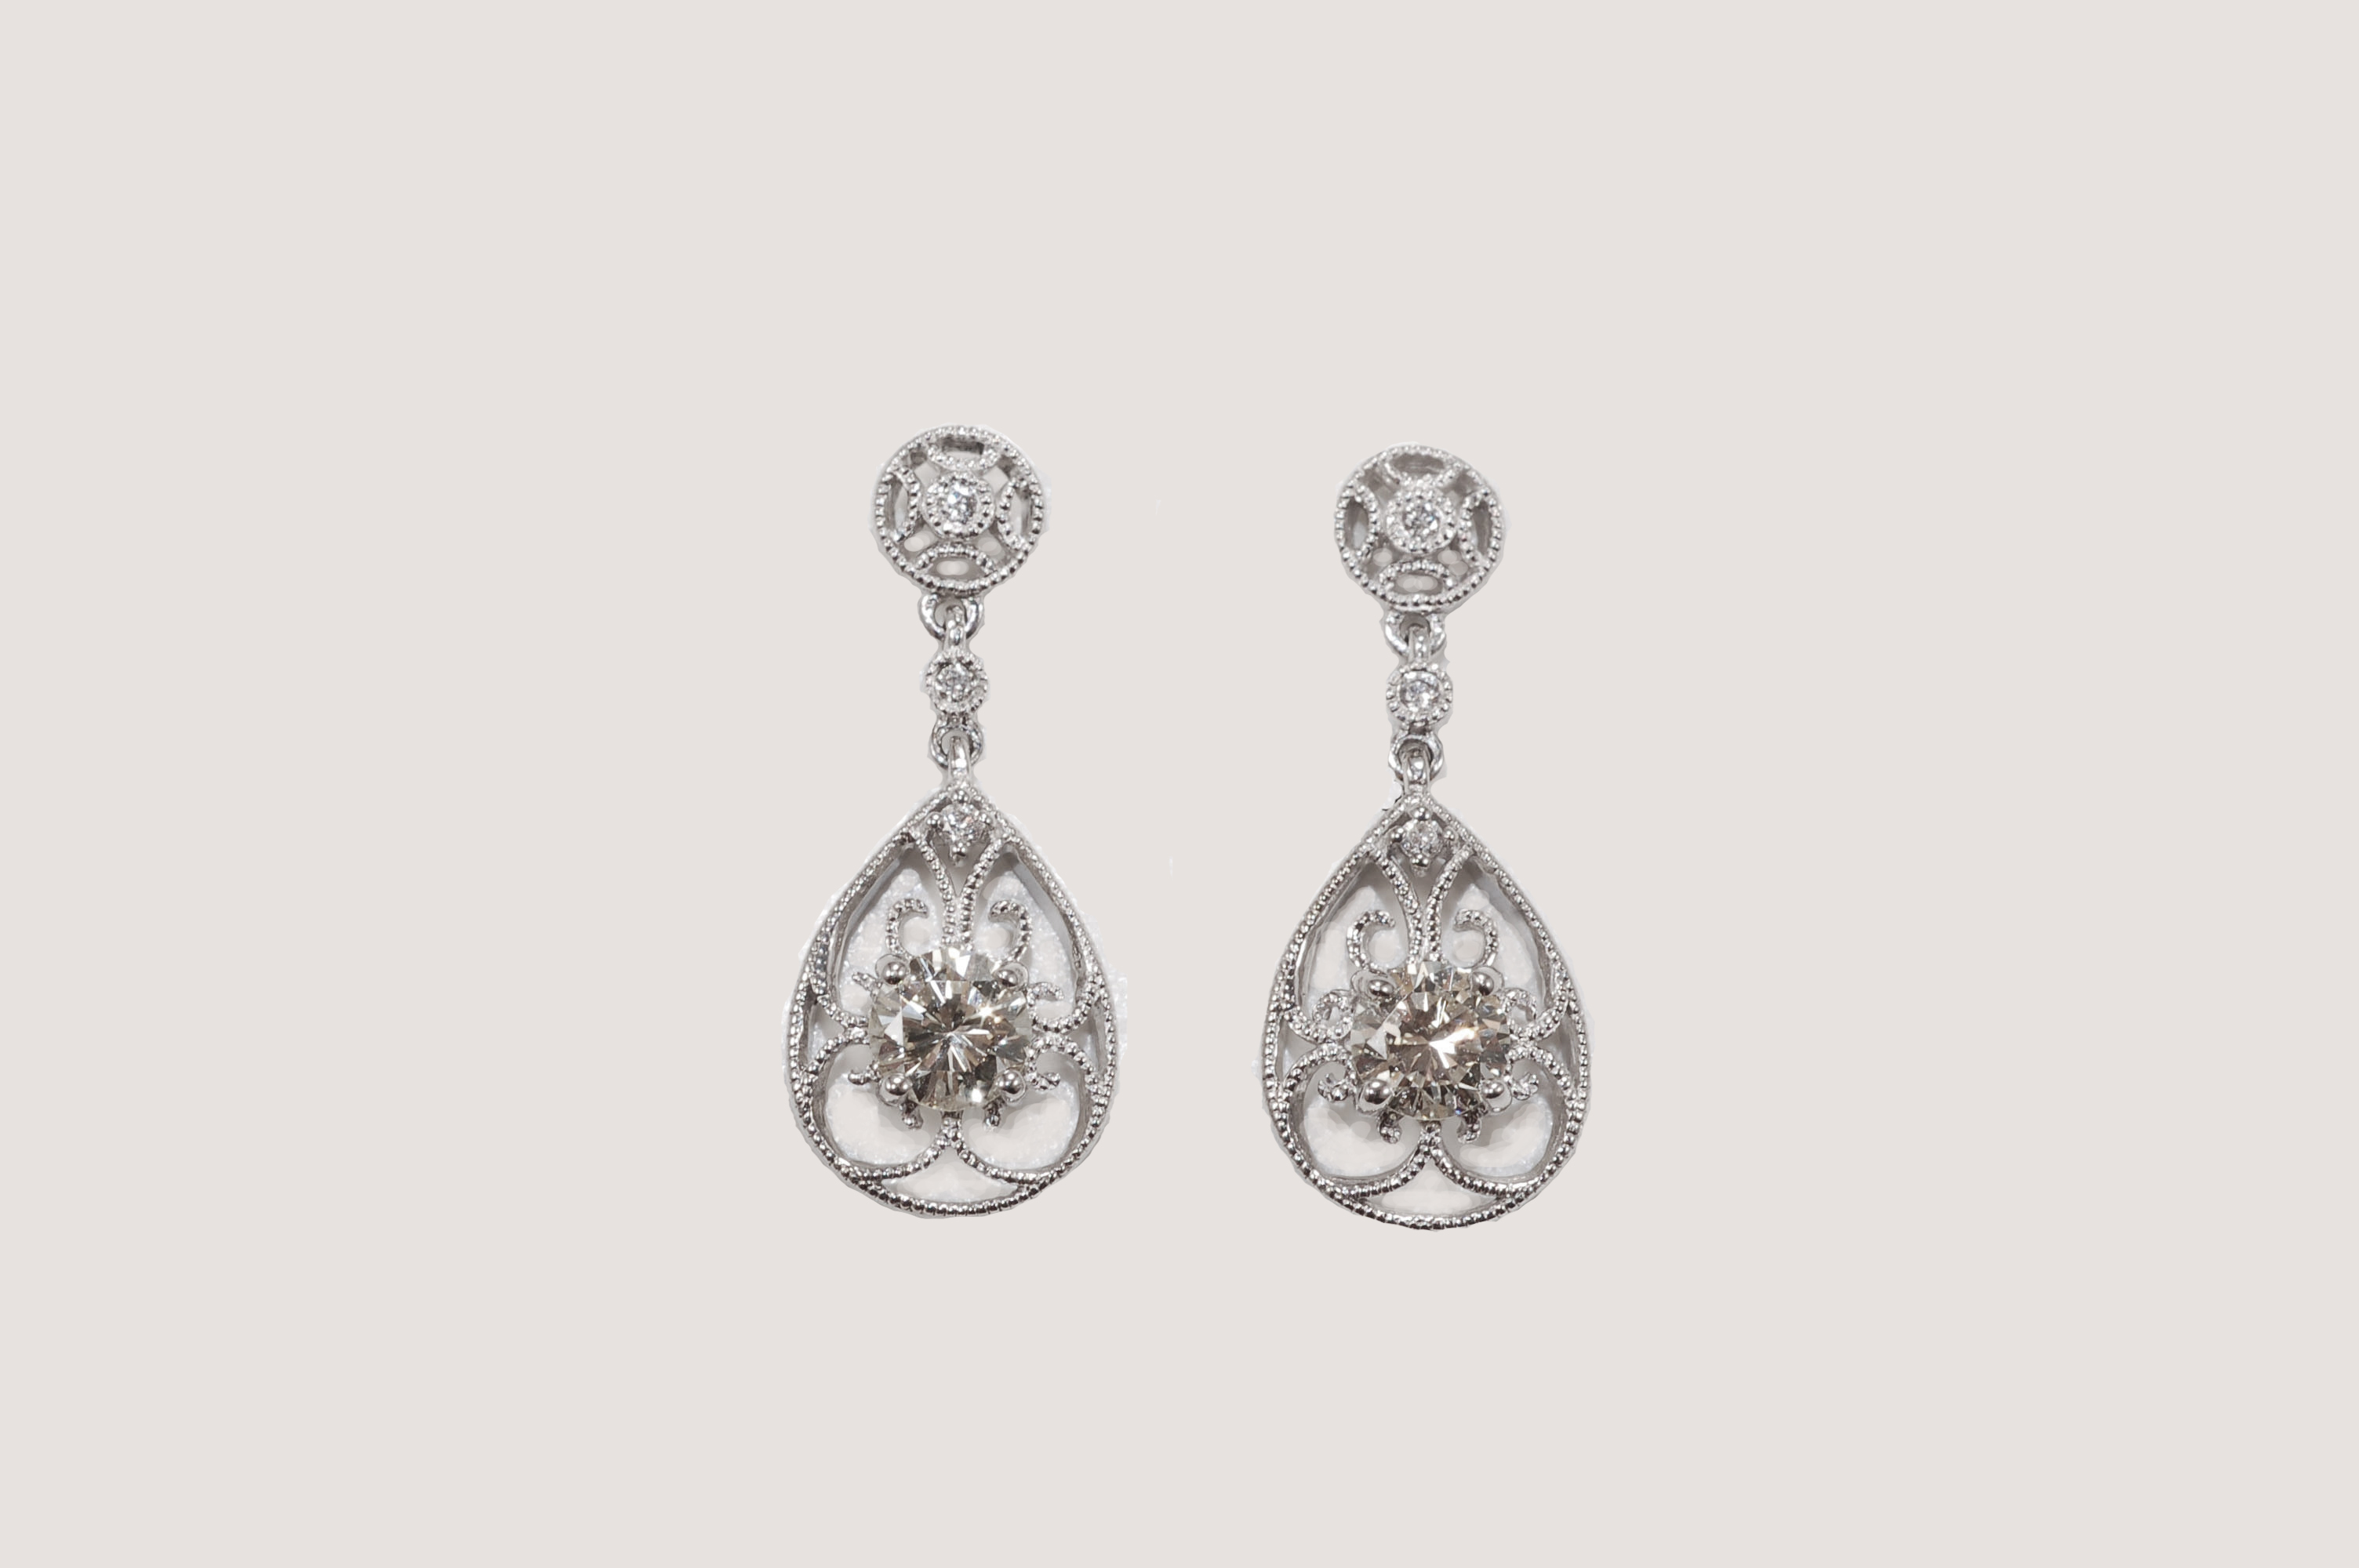 iroshini earrings jewellery product kunzite